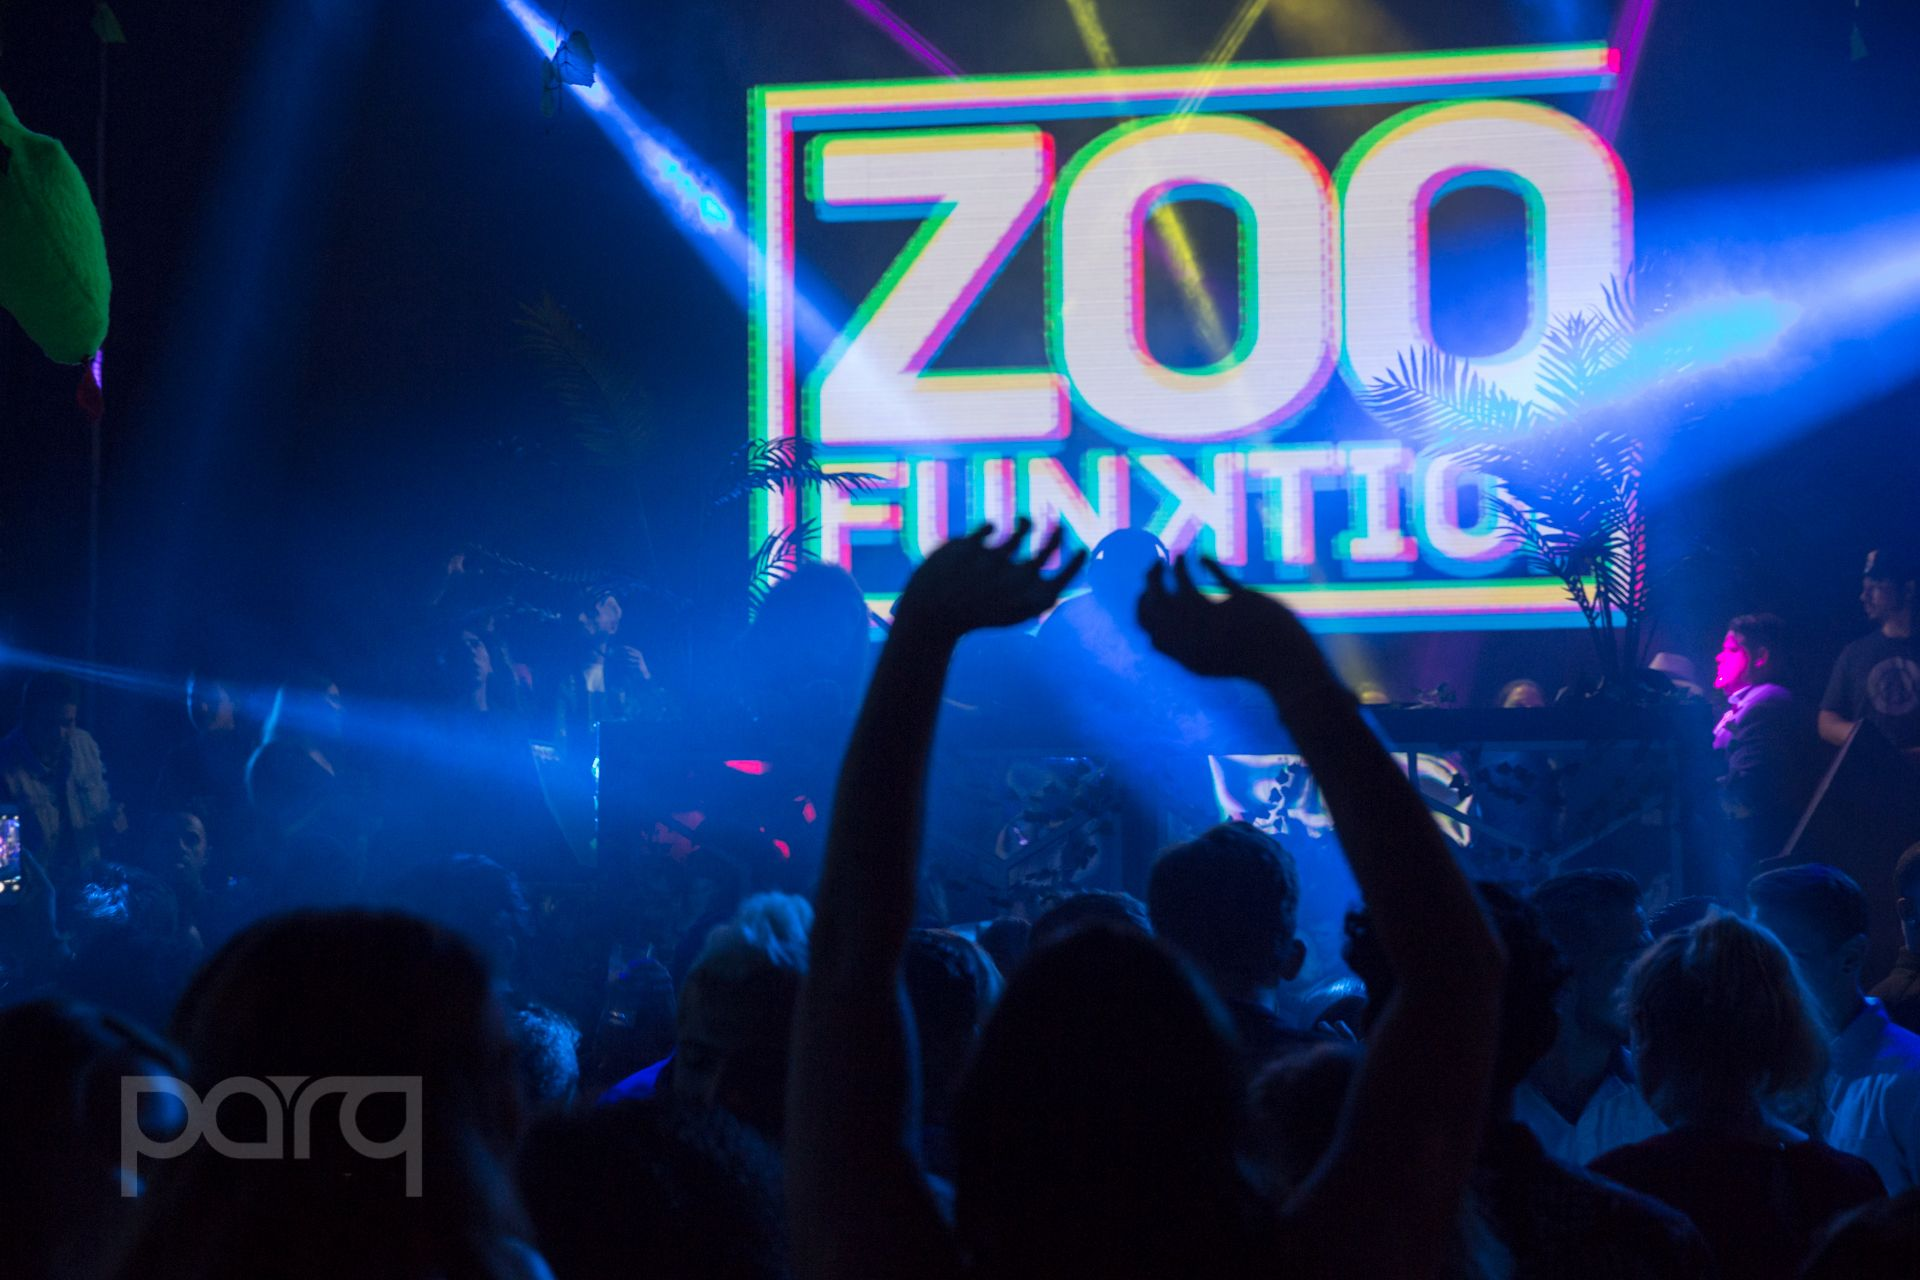 04.22.17 Zoo Funktion-1.jpg